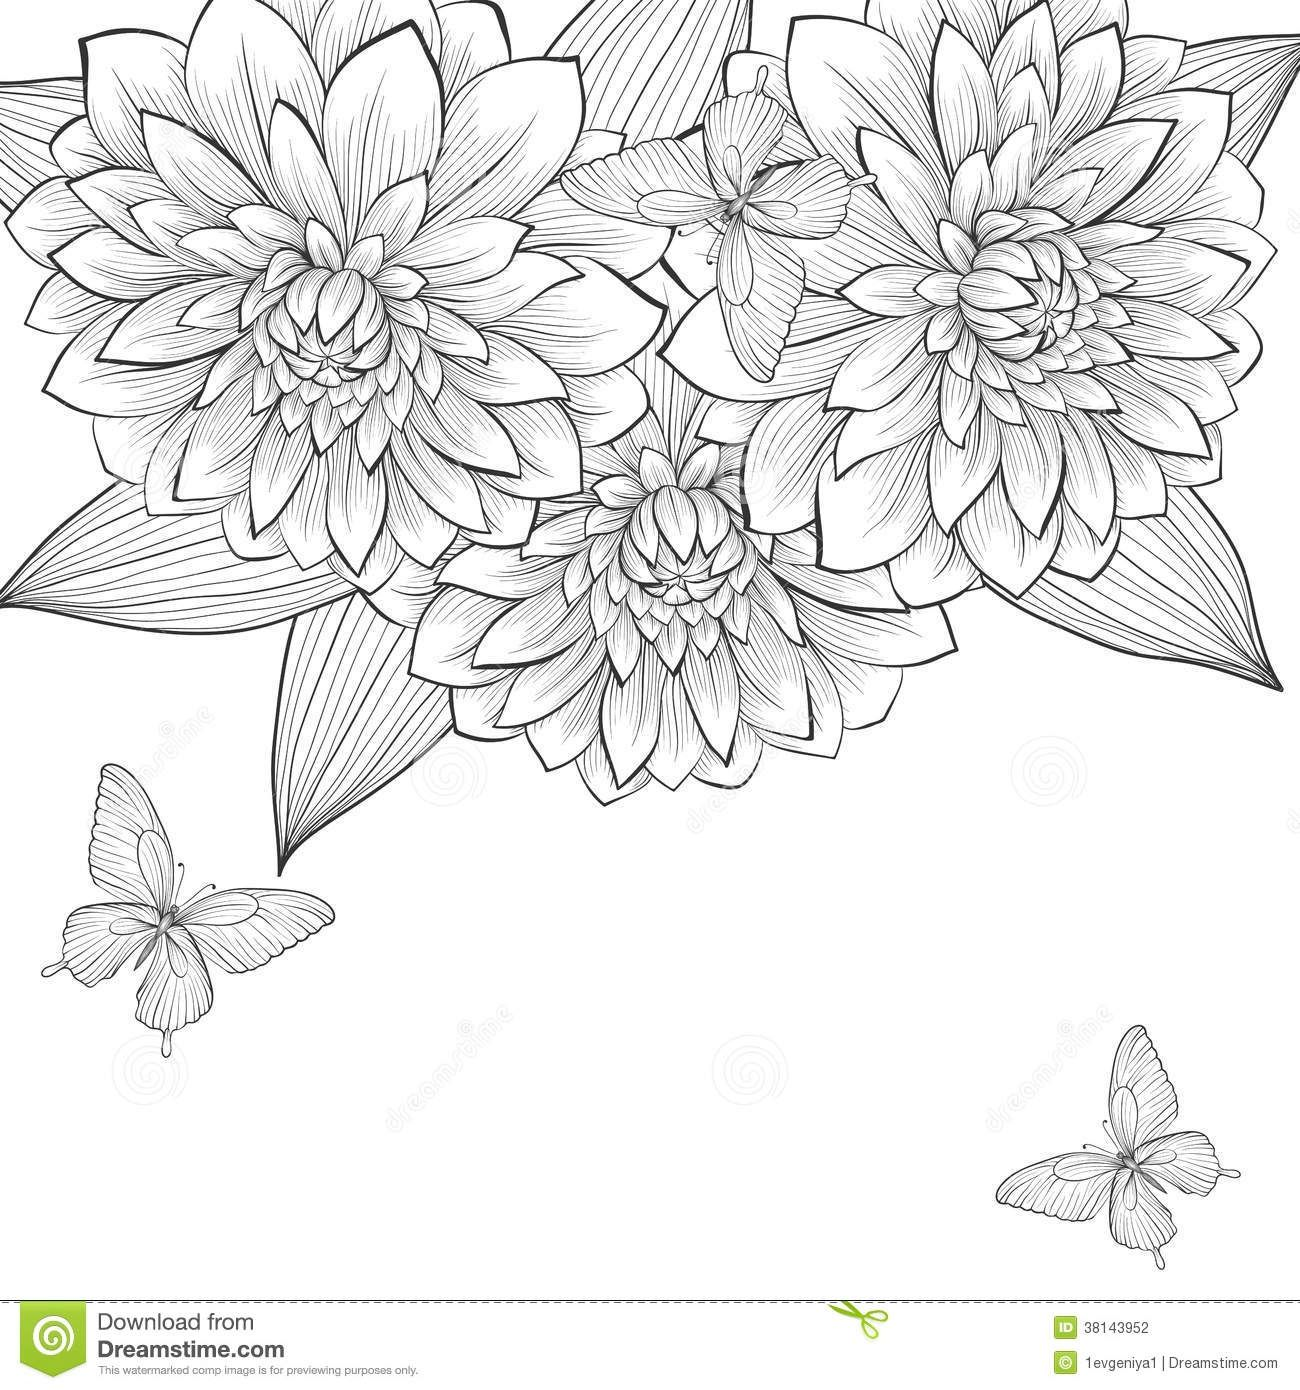 Dahlia Flower Printable Coloring Pages - Coloring Panda   Coloring ...